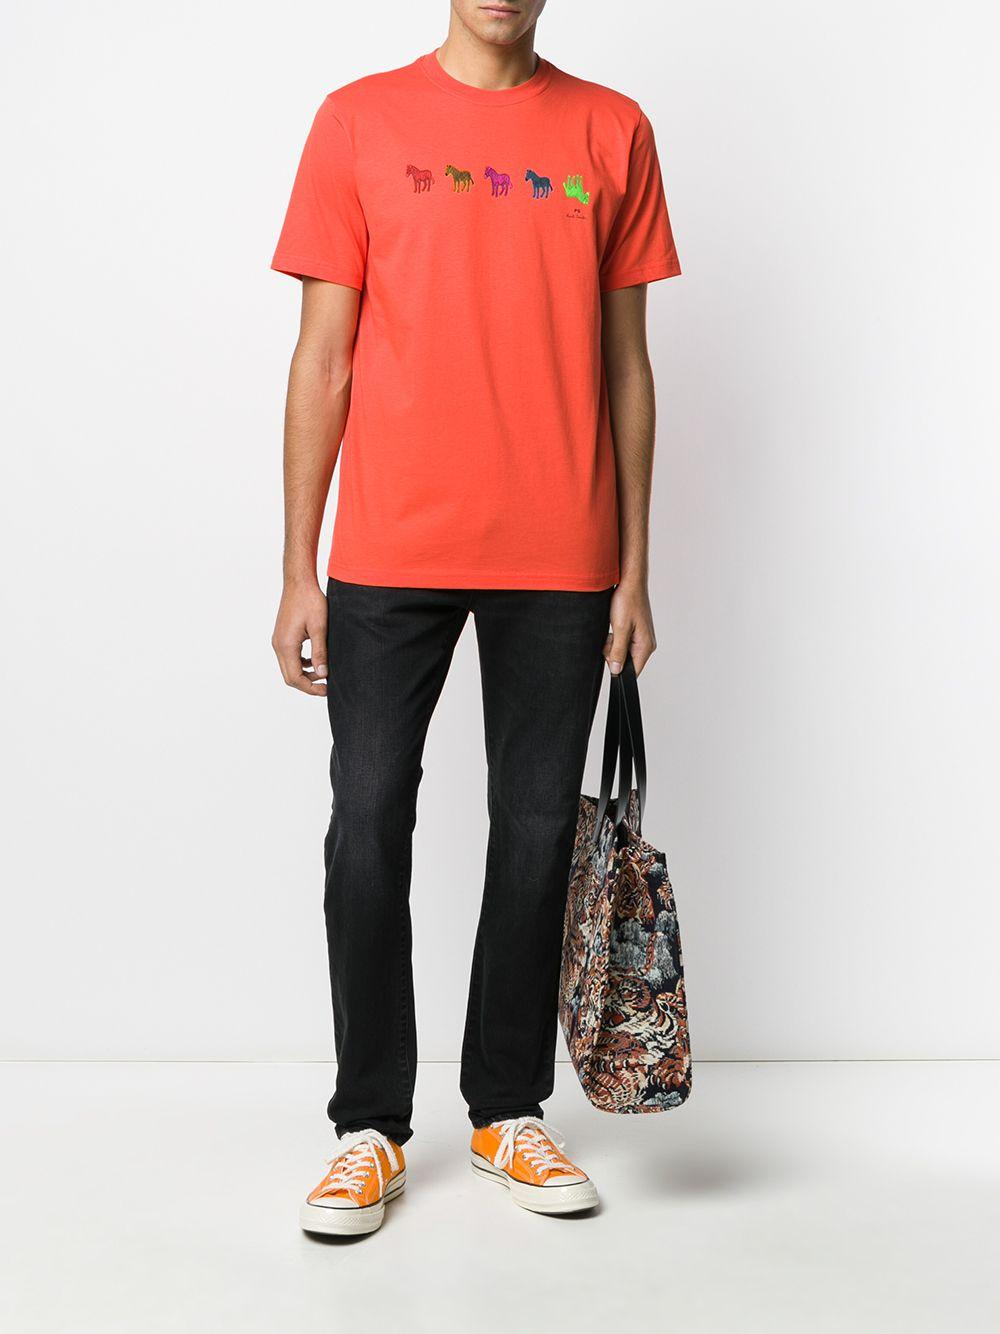 PS by Paul Smith Katoen T-shirt Met Zebraprint in het Oranje voor heren